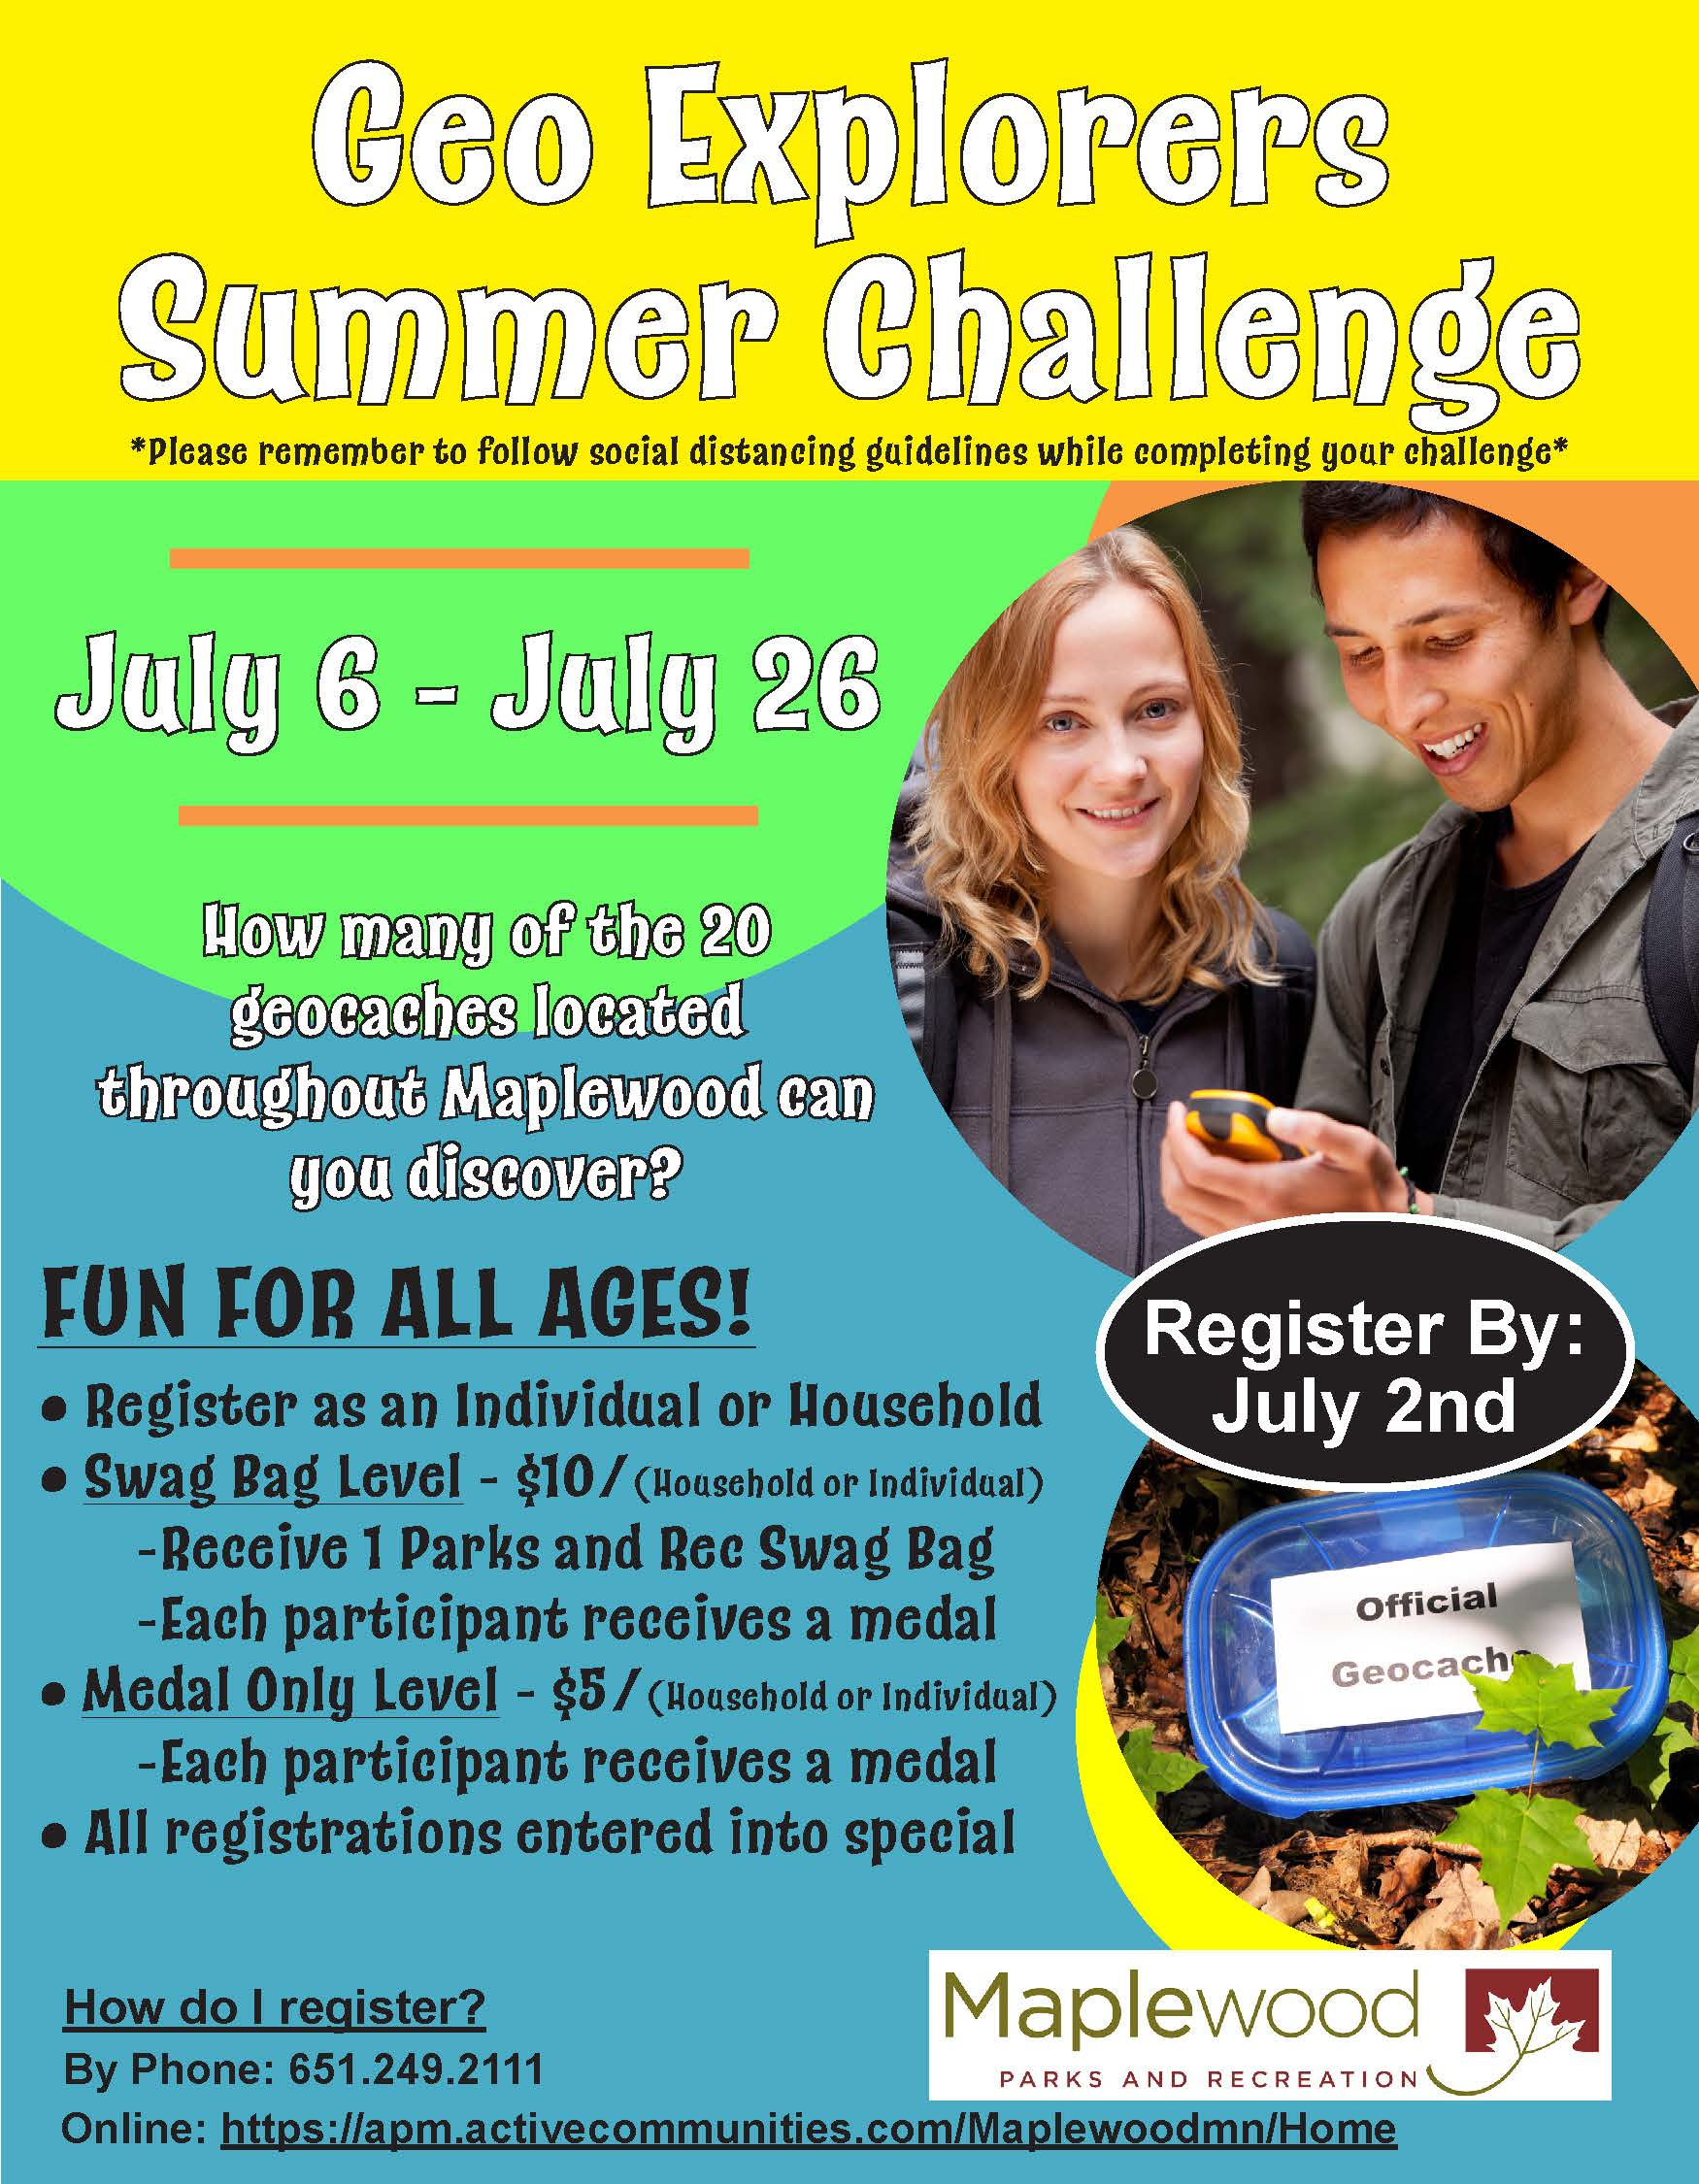 July Geo Explorers, July 6-26, sign up as an individual or as a household, cost $5-$10, win prizes